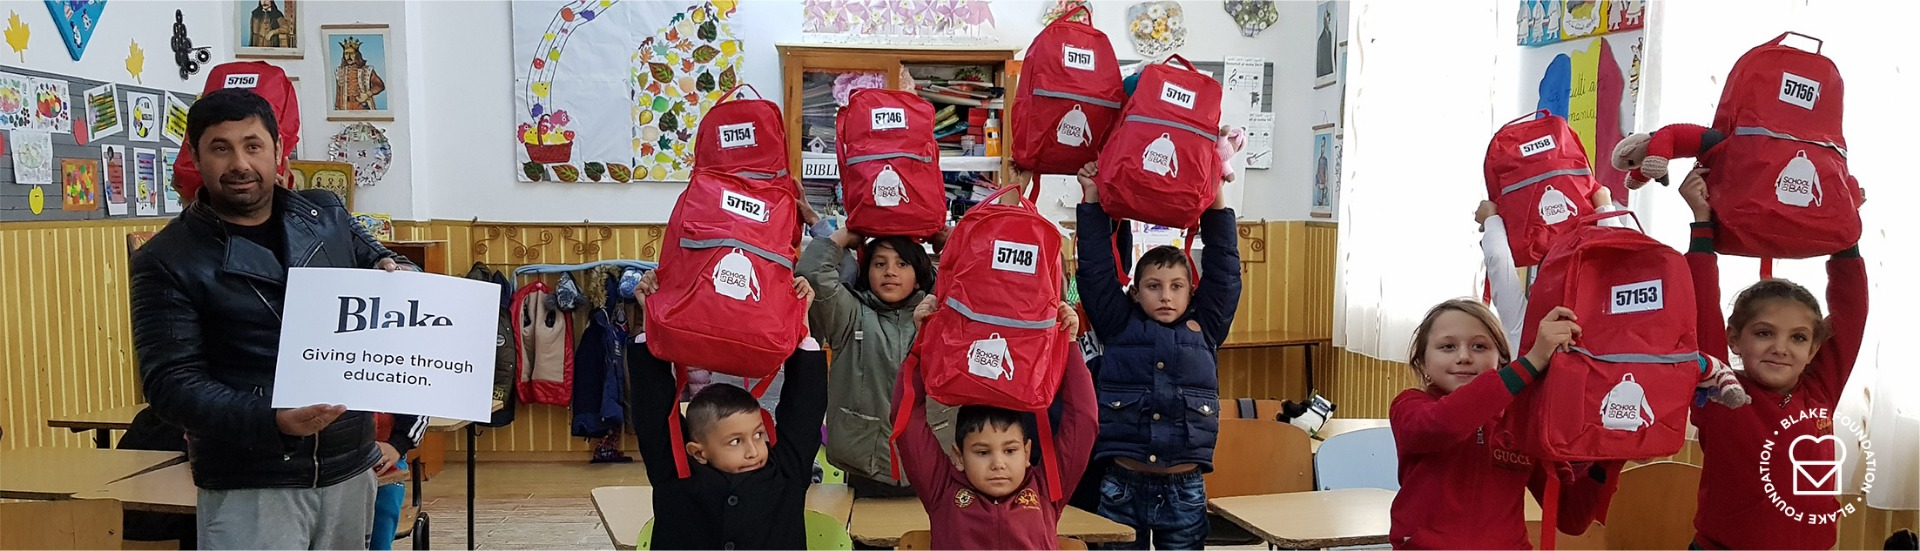 children with their schoolbags